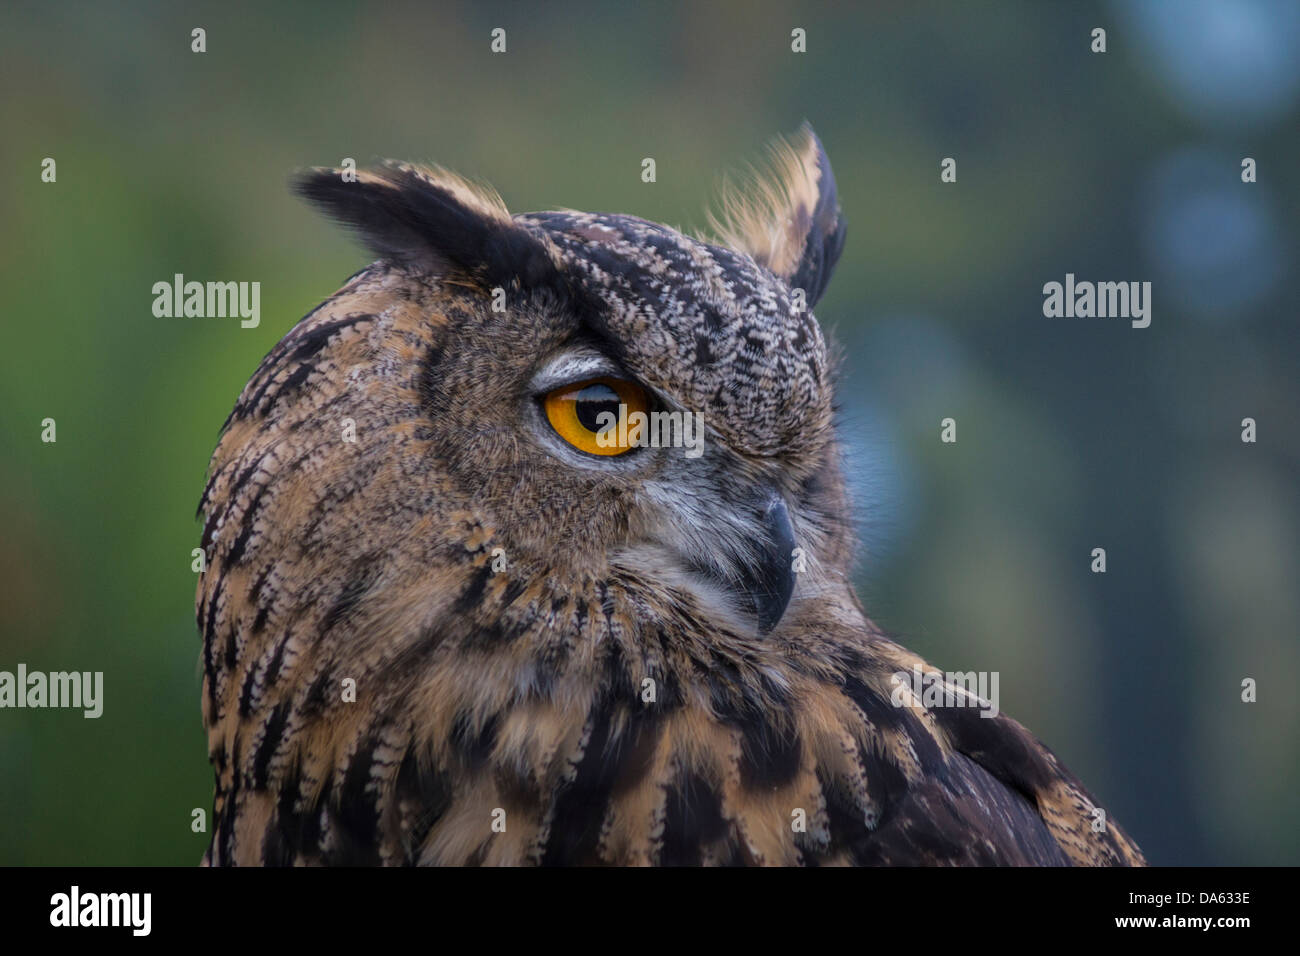 birds of prey, bird, Blackland Prairie Raptor Center, Bubo virginianus, Great Horned Owl, owl, Hunter, Strigidae, - Stock Image